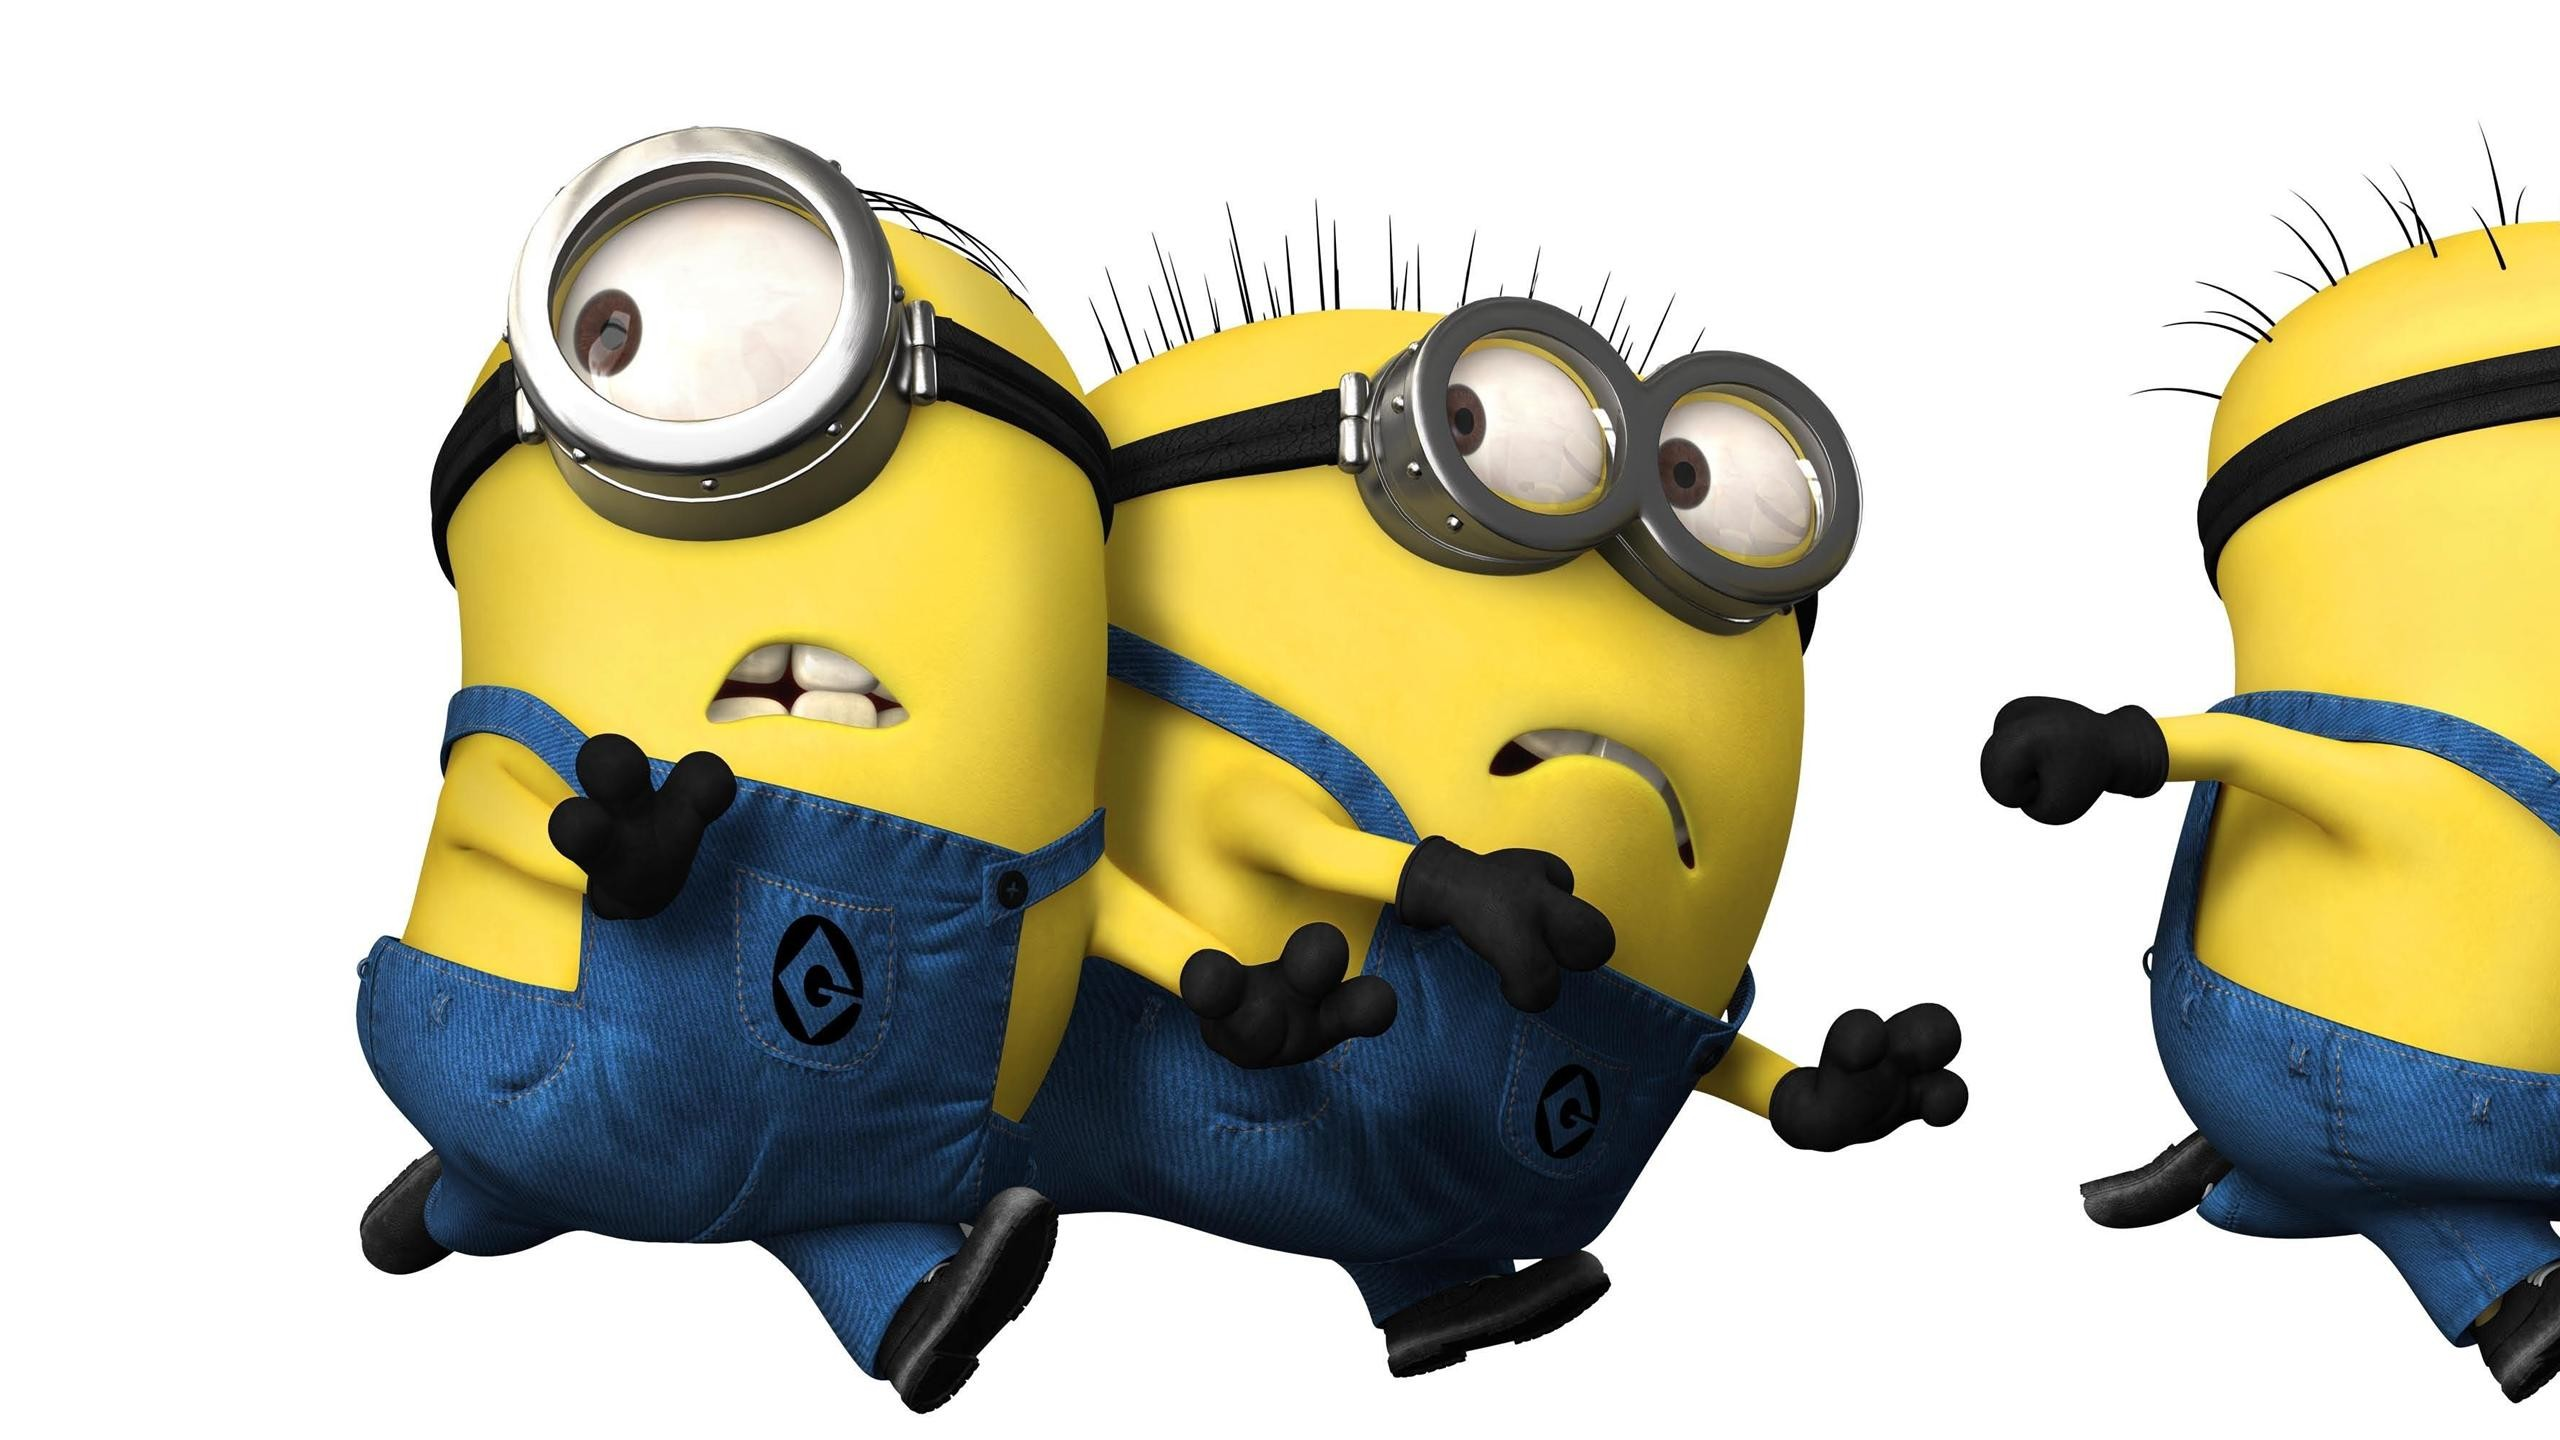 1920x1080 Explore Animation Movies, Minions Quotes, And More! Download ·  2560x1473 Despicable Me Minion Wallpapers ...